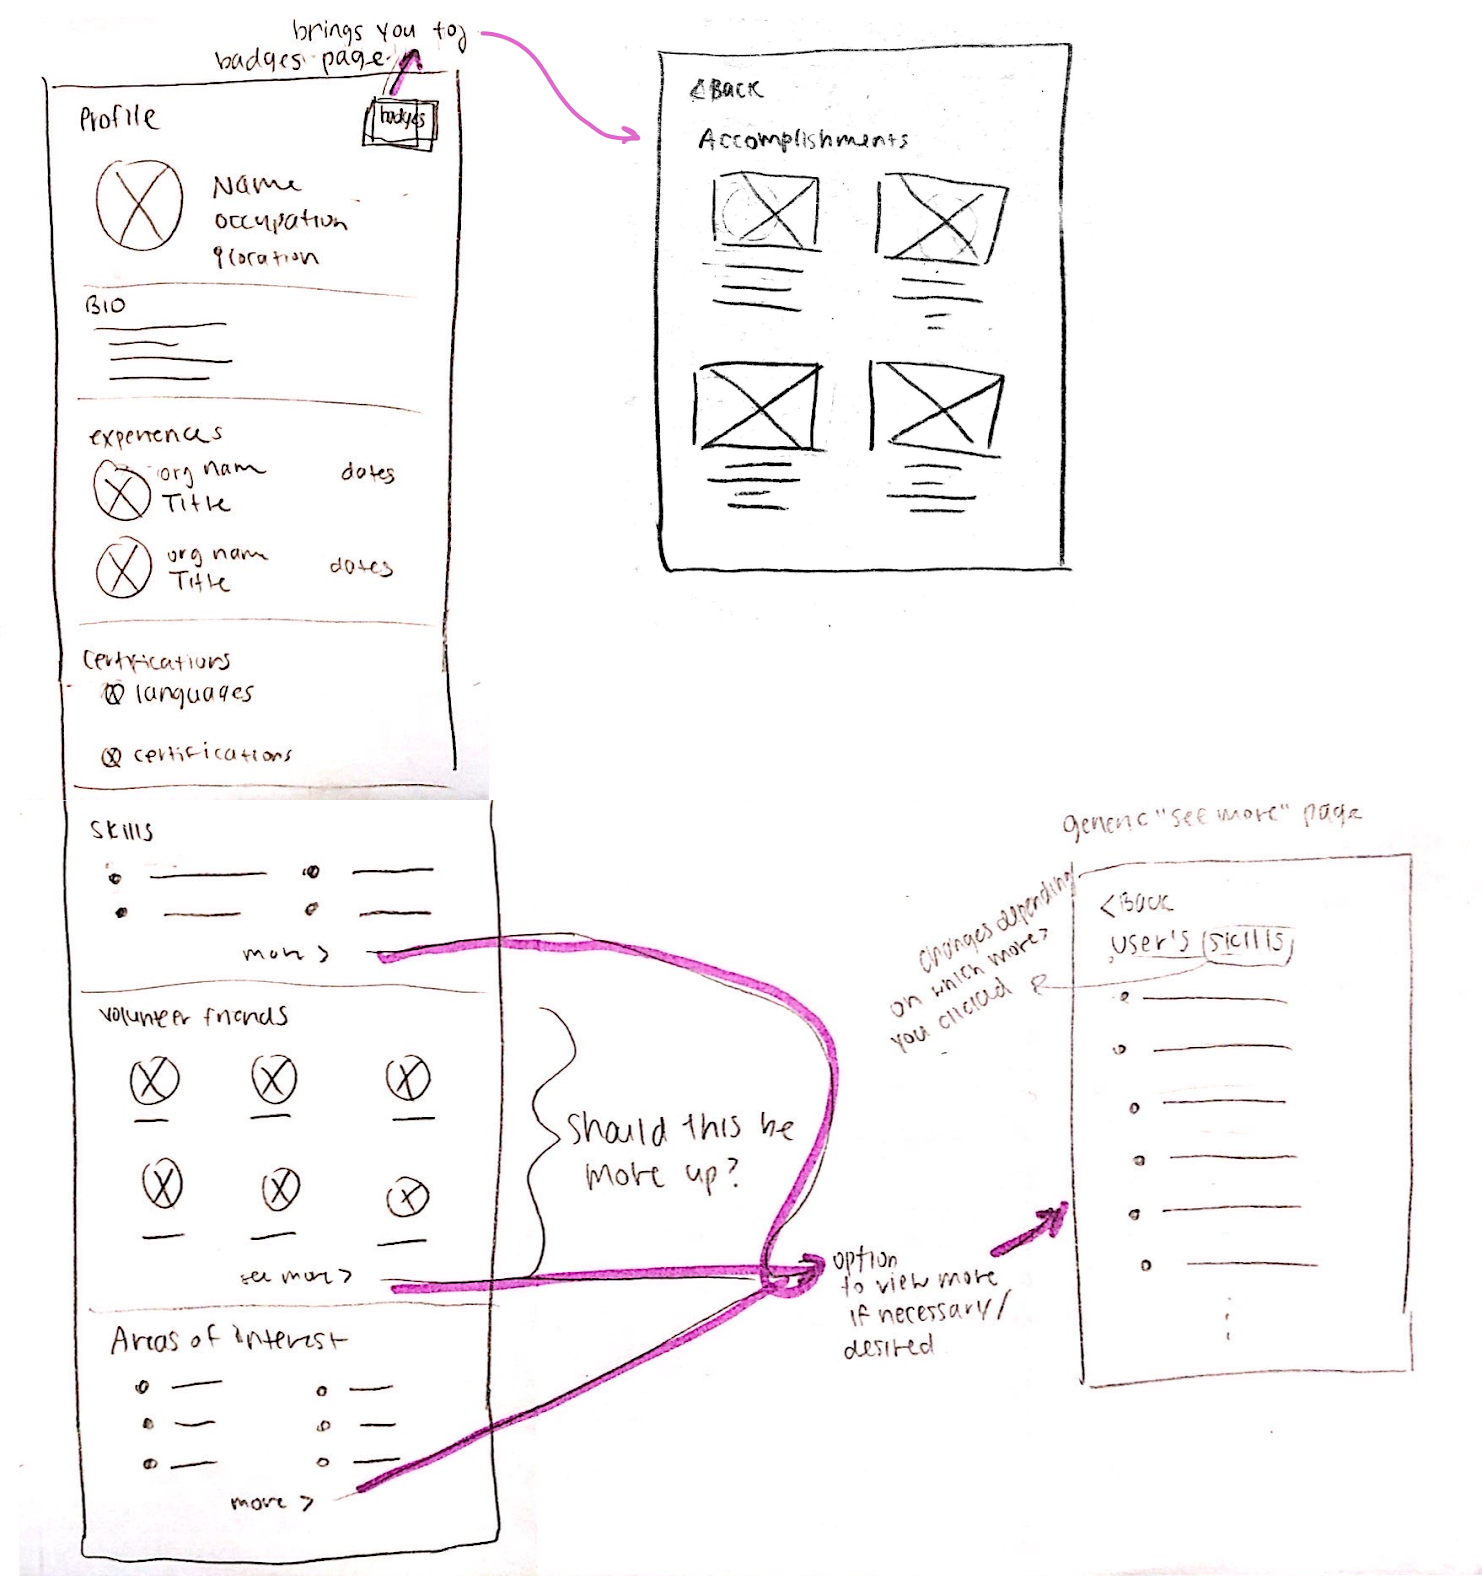 User flow — User profile